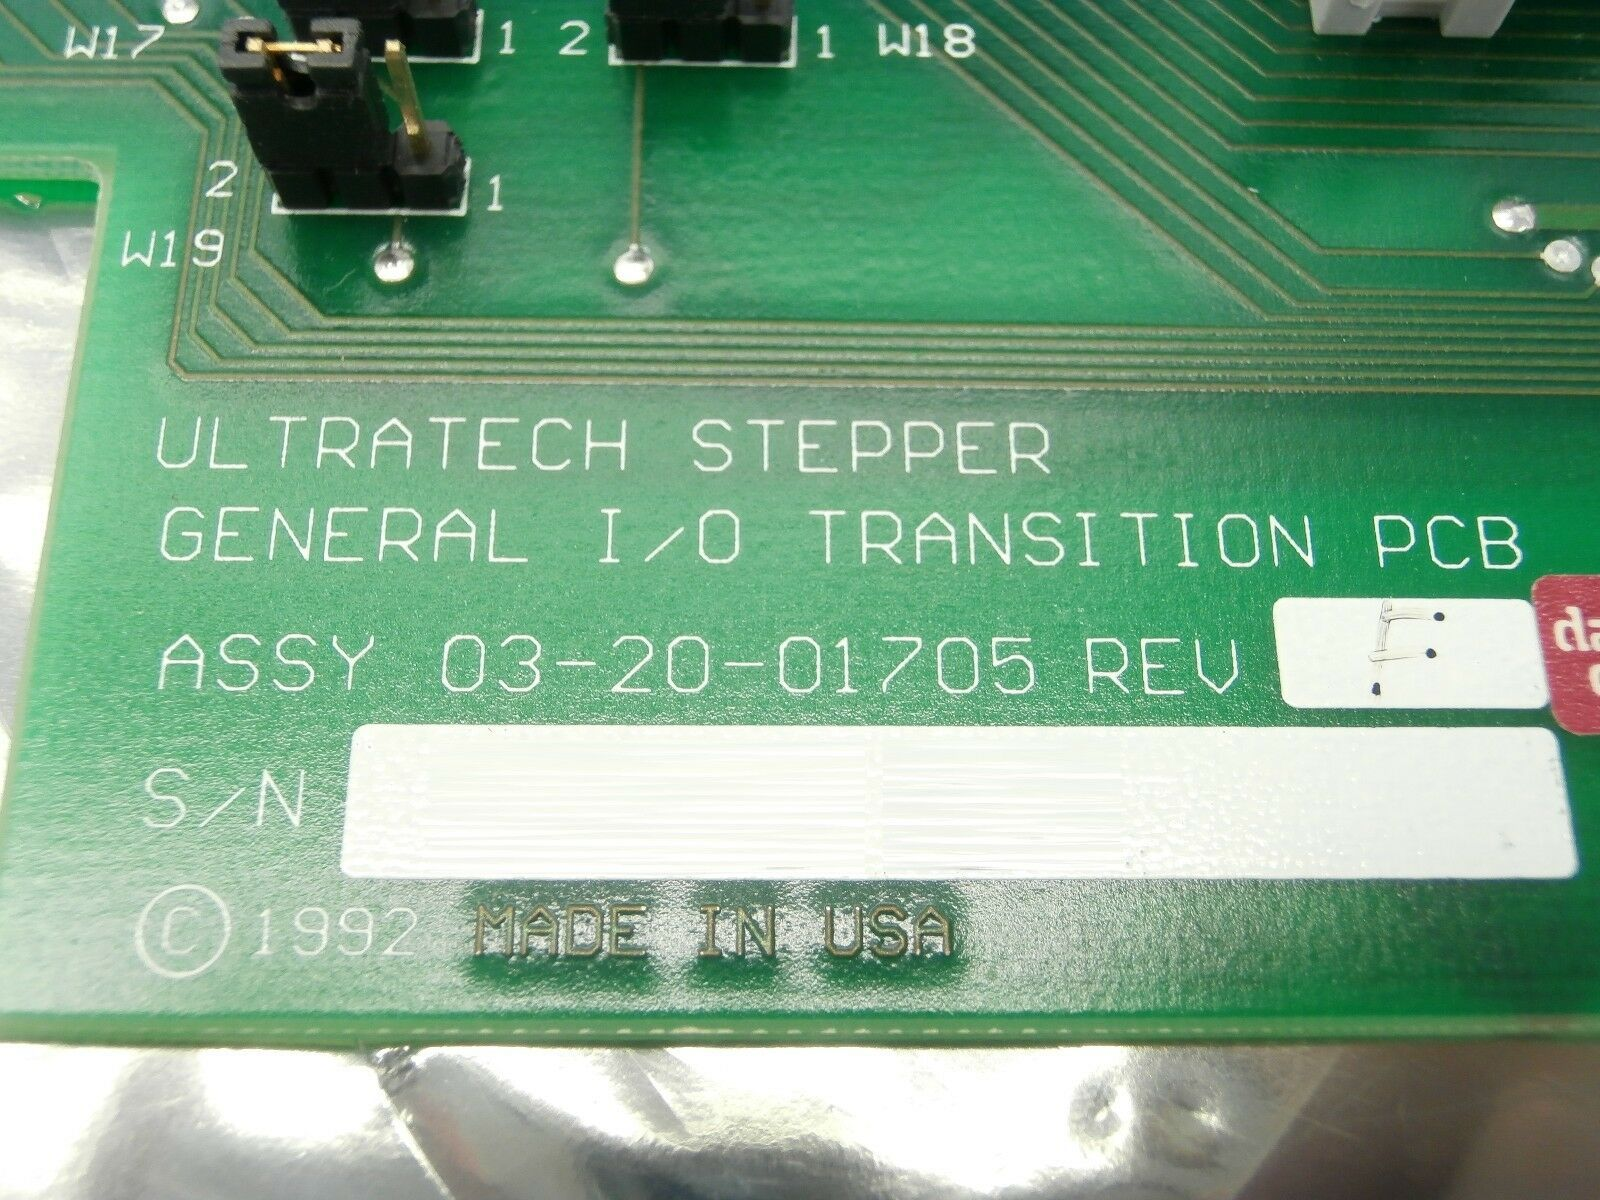 Ultratech Stepper 03-20-01705 General Transition PCB Card GEN I/O 2 Titan Used